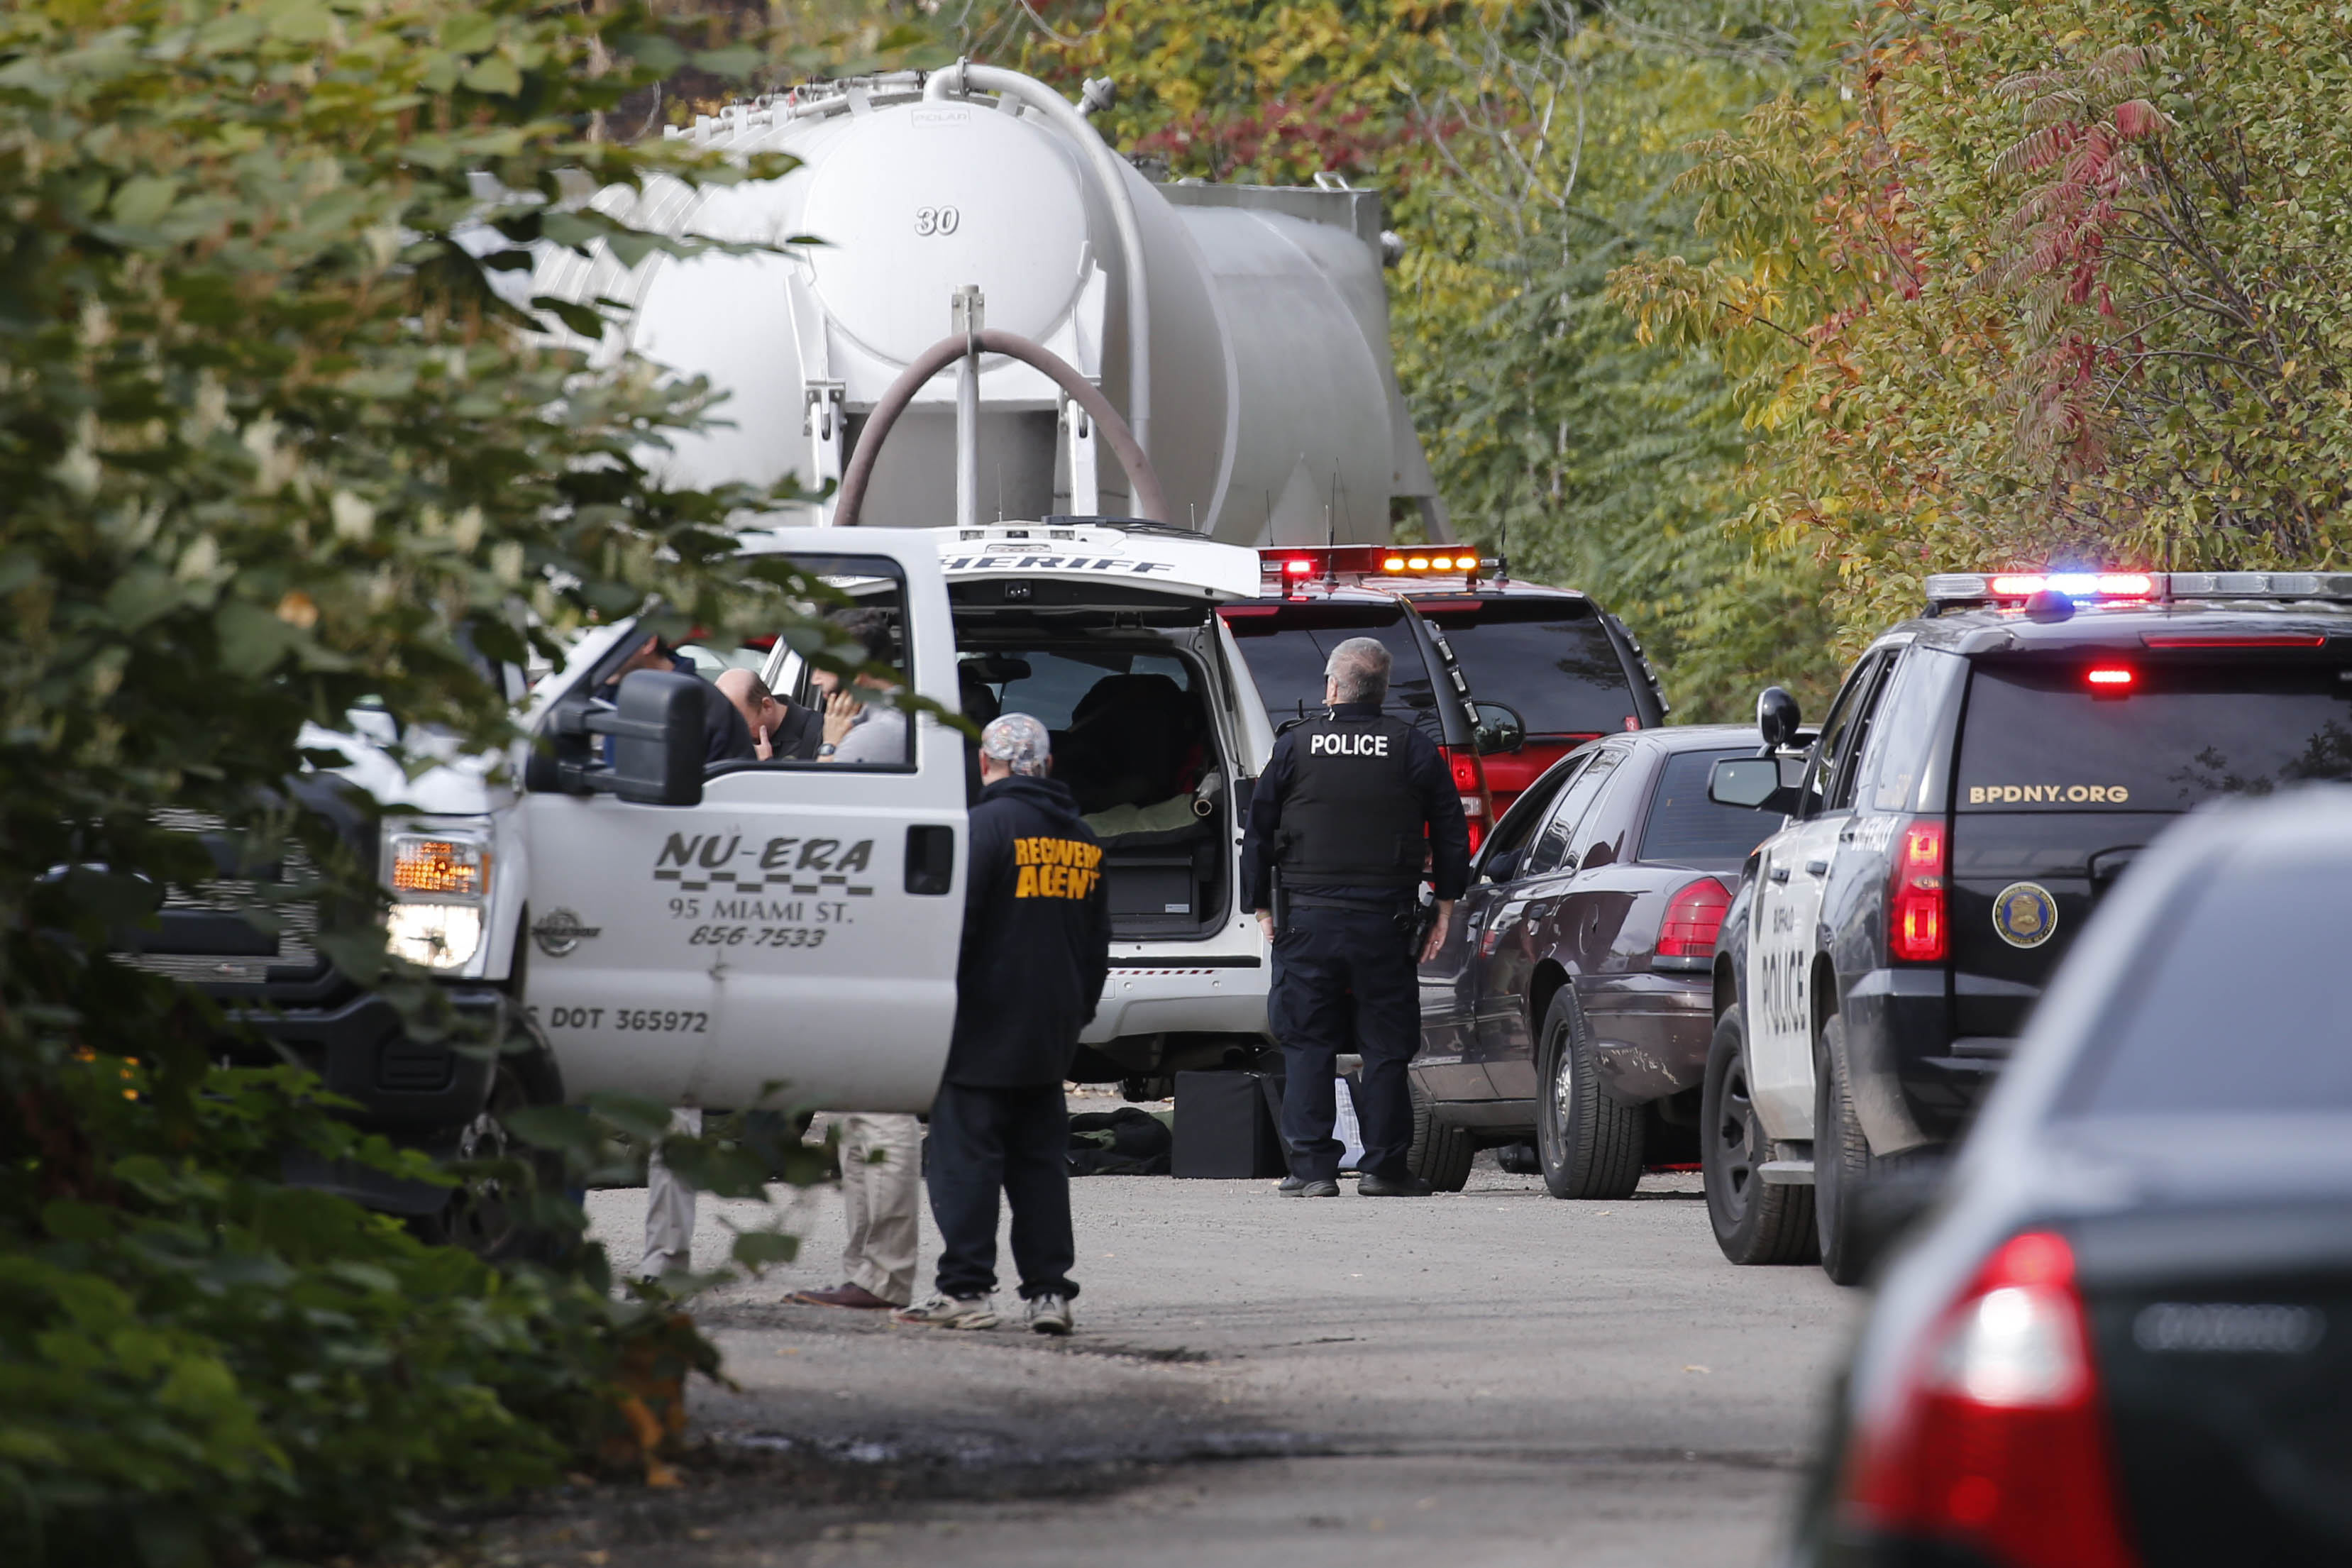 Law enforcement officials, including the Erie County Sheriff bomb squad, are investigating on scene at Nu Era on Miami Street, Wednesday, Oct. 26, 2016.  (Derek Gee/Buffalo News)